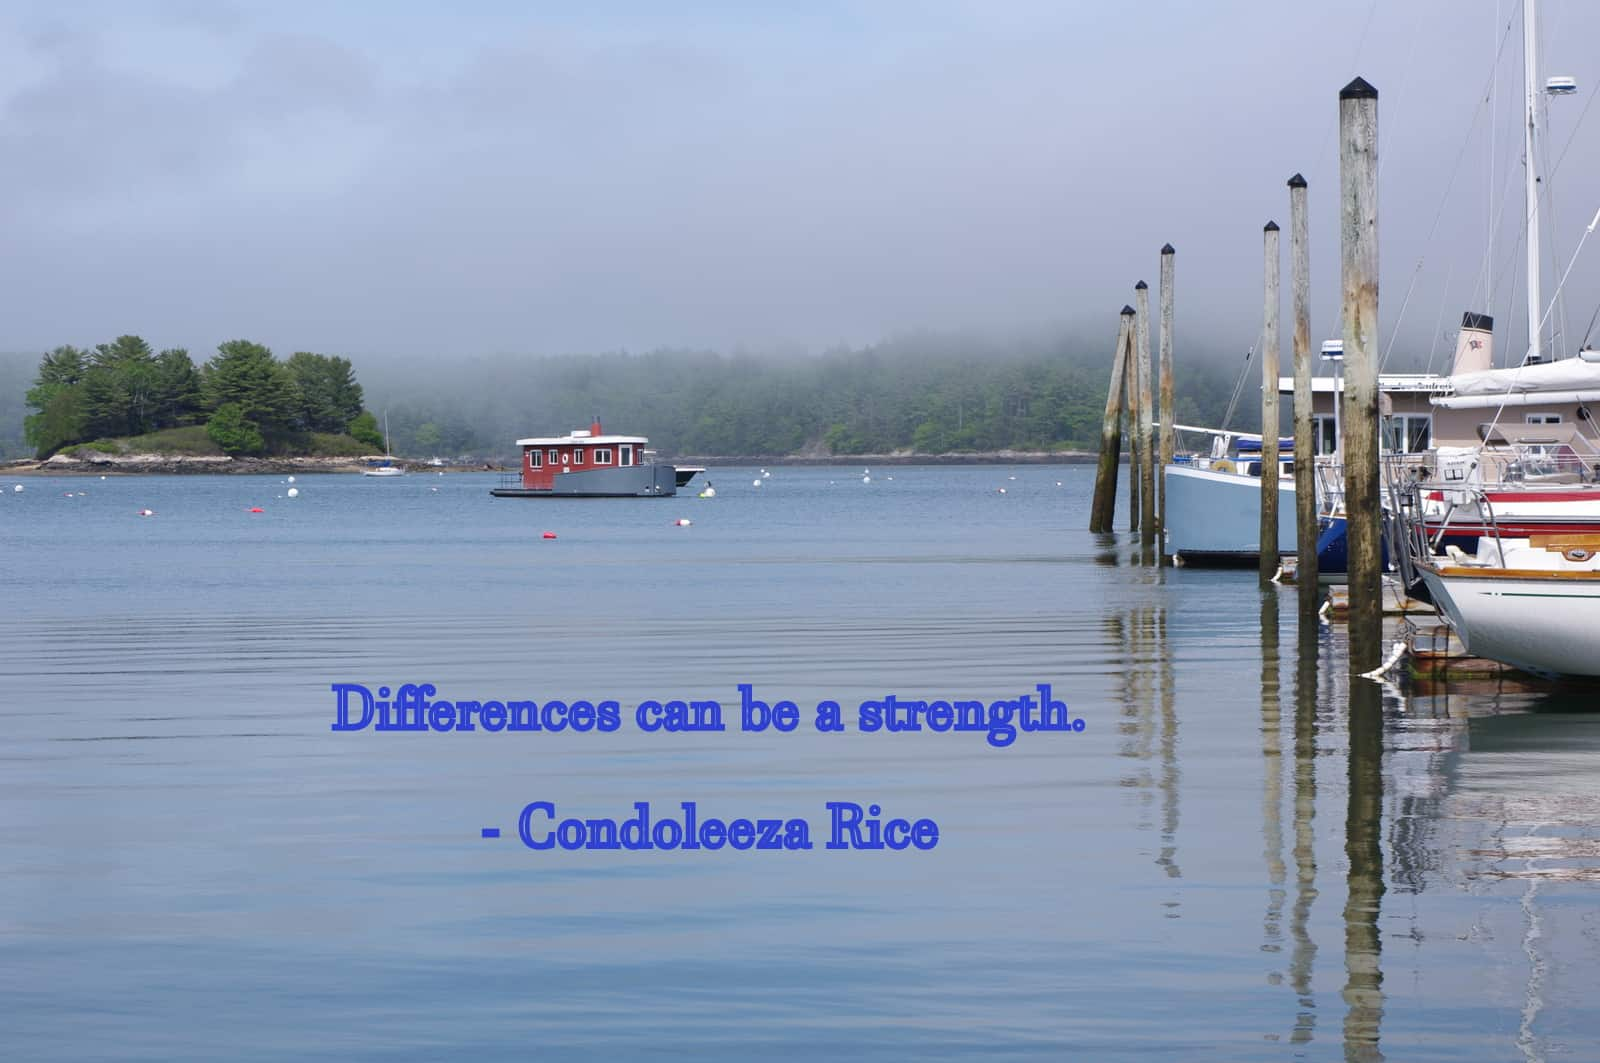 differences-are-strength